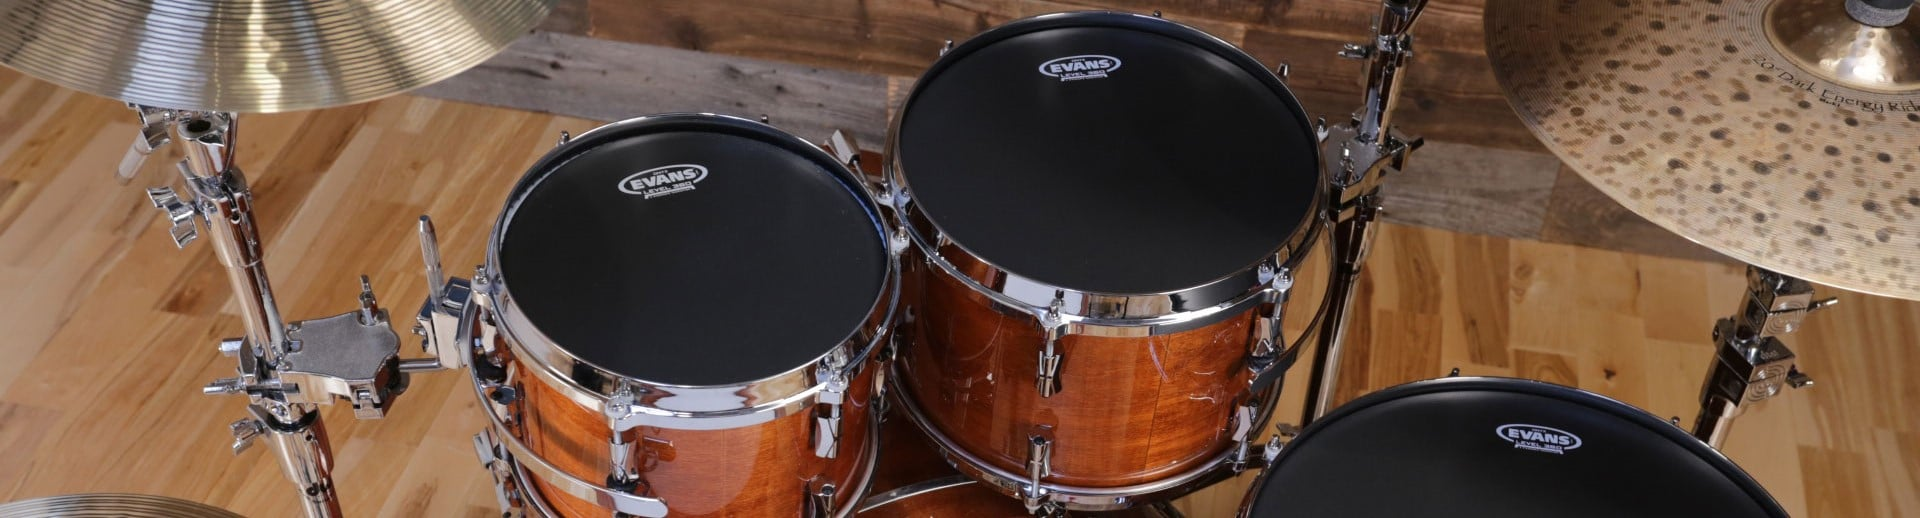 Best Drum Heads Reviewed in Detail